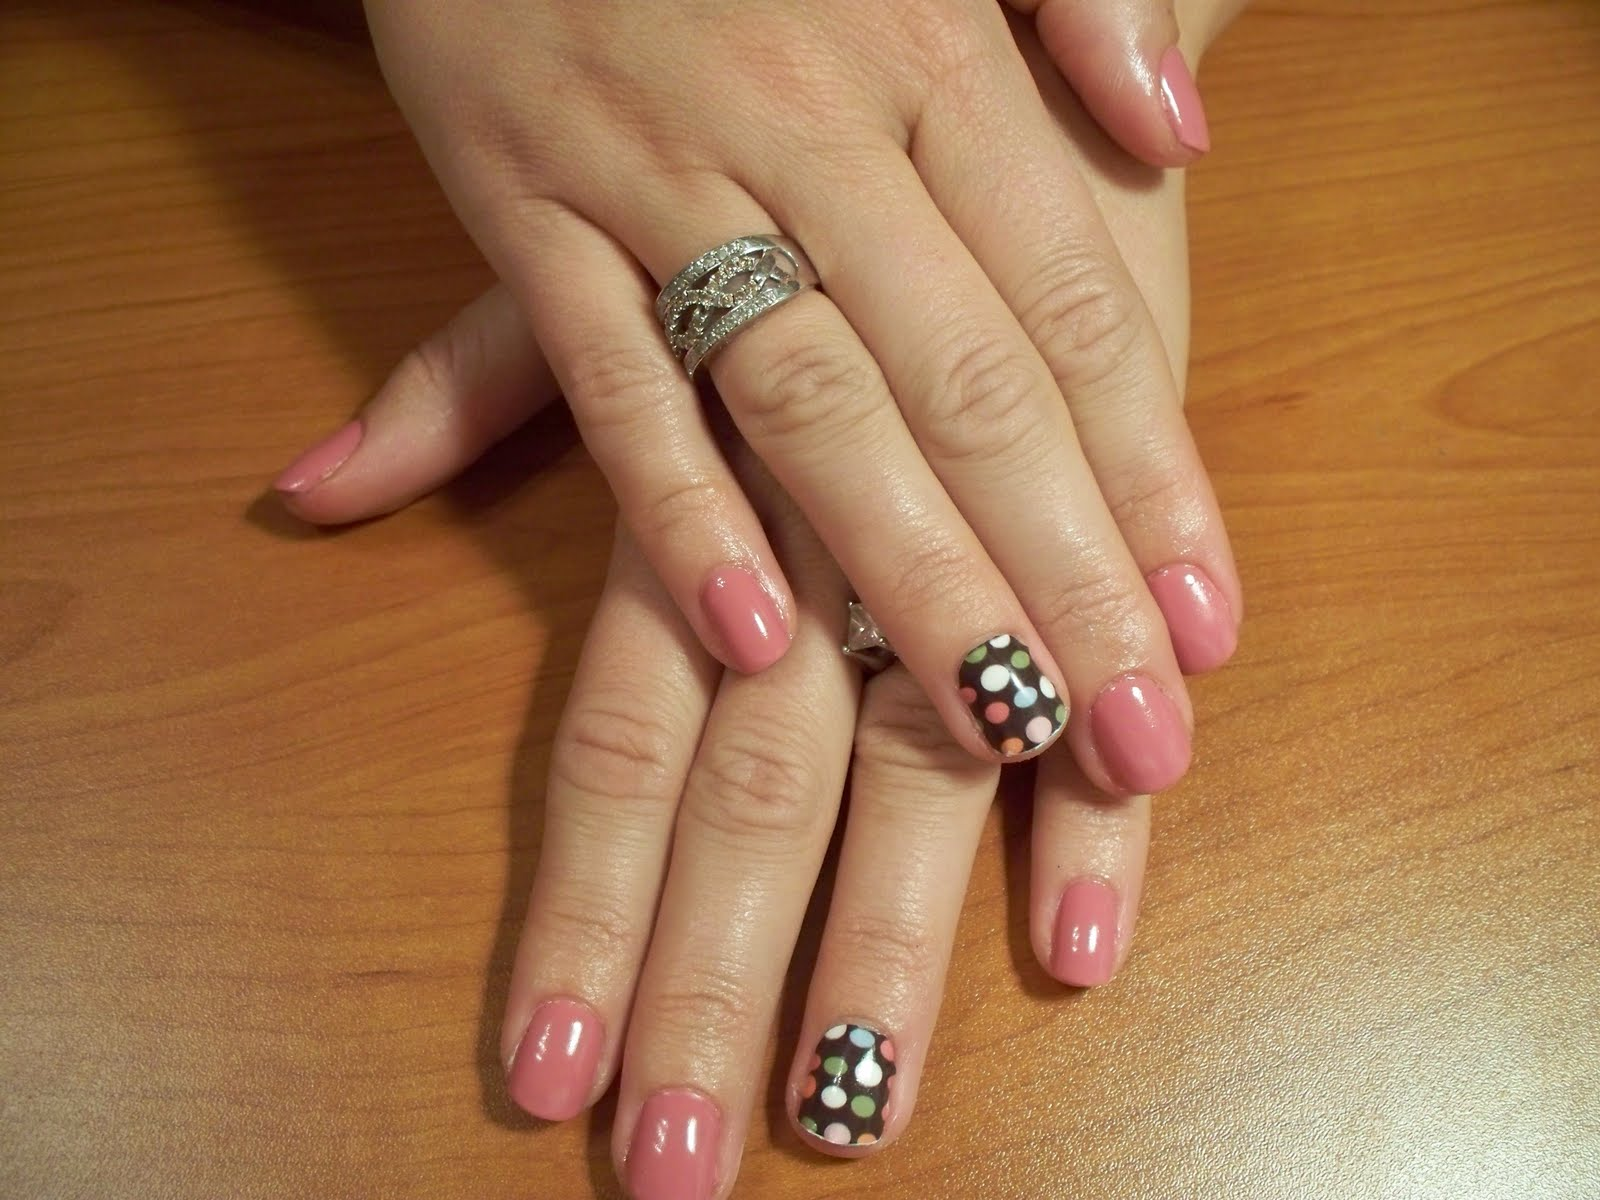 Chocolate with sprinkles SheeKee and Rosebud Shellac manicure